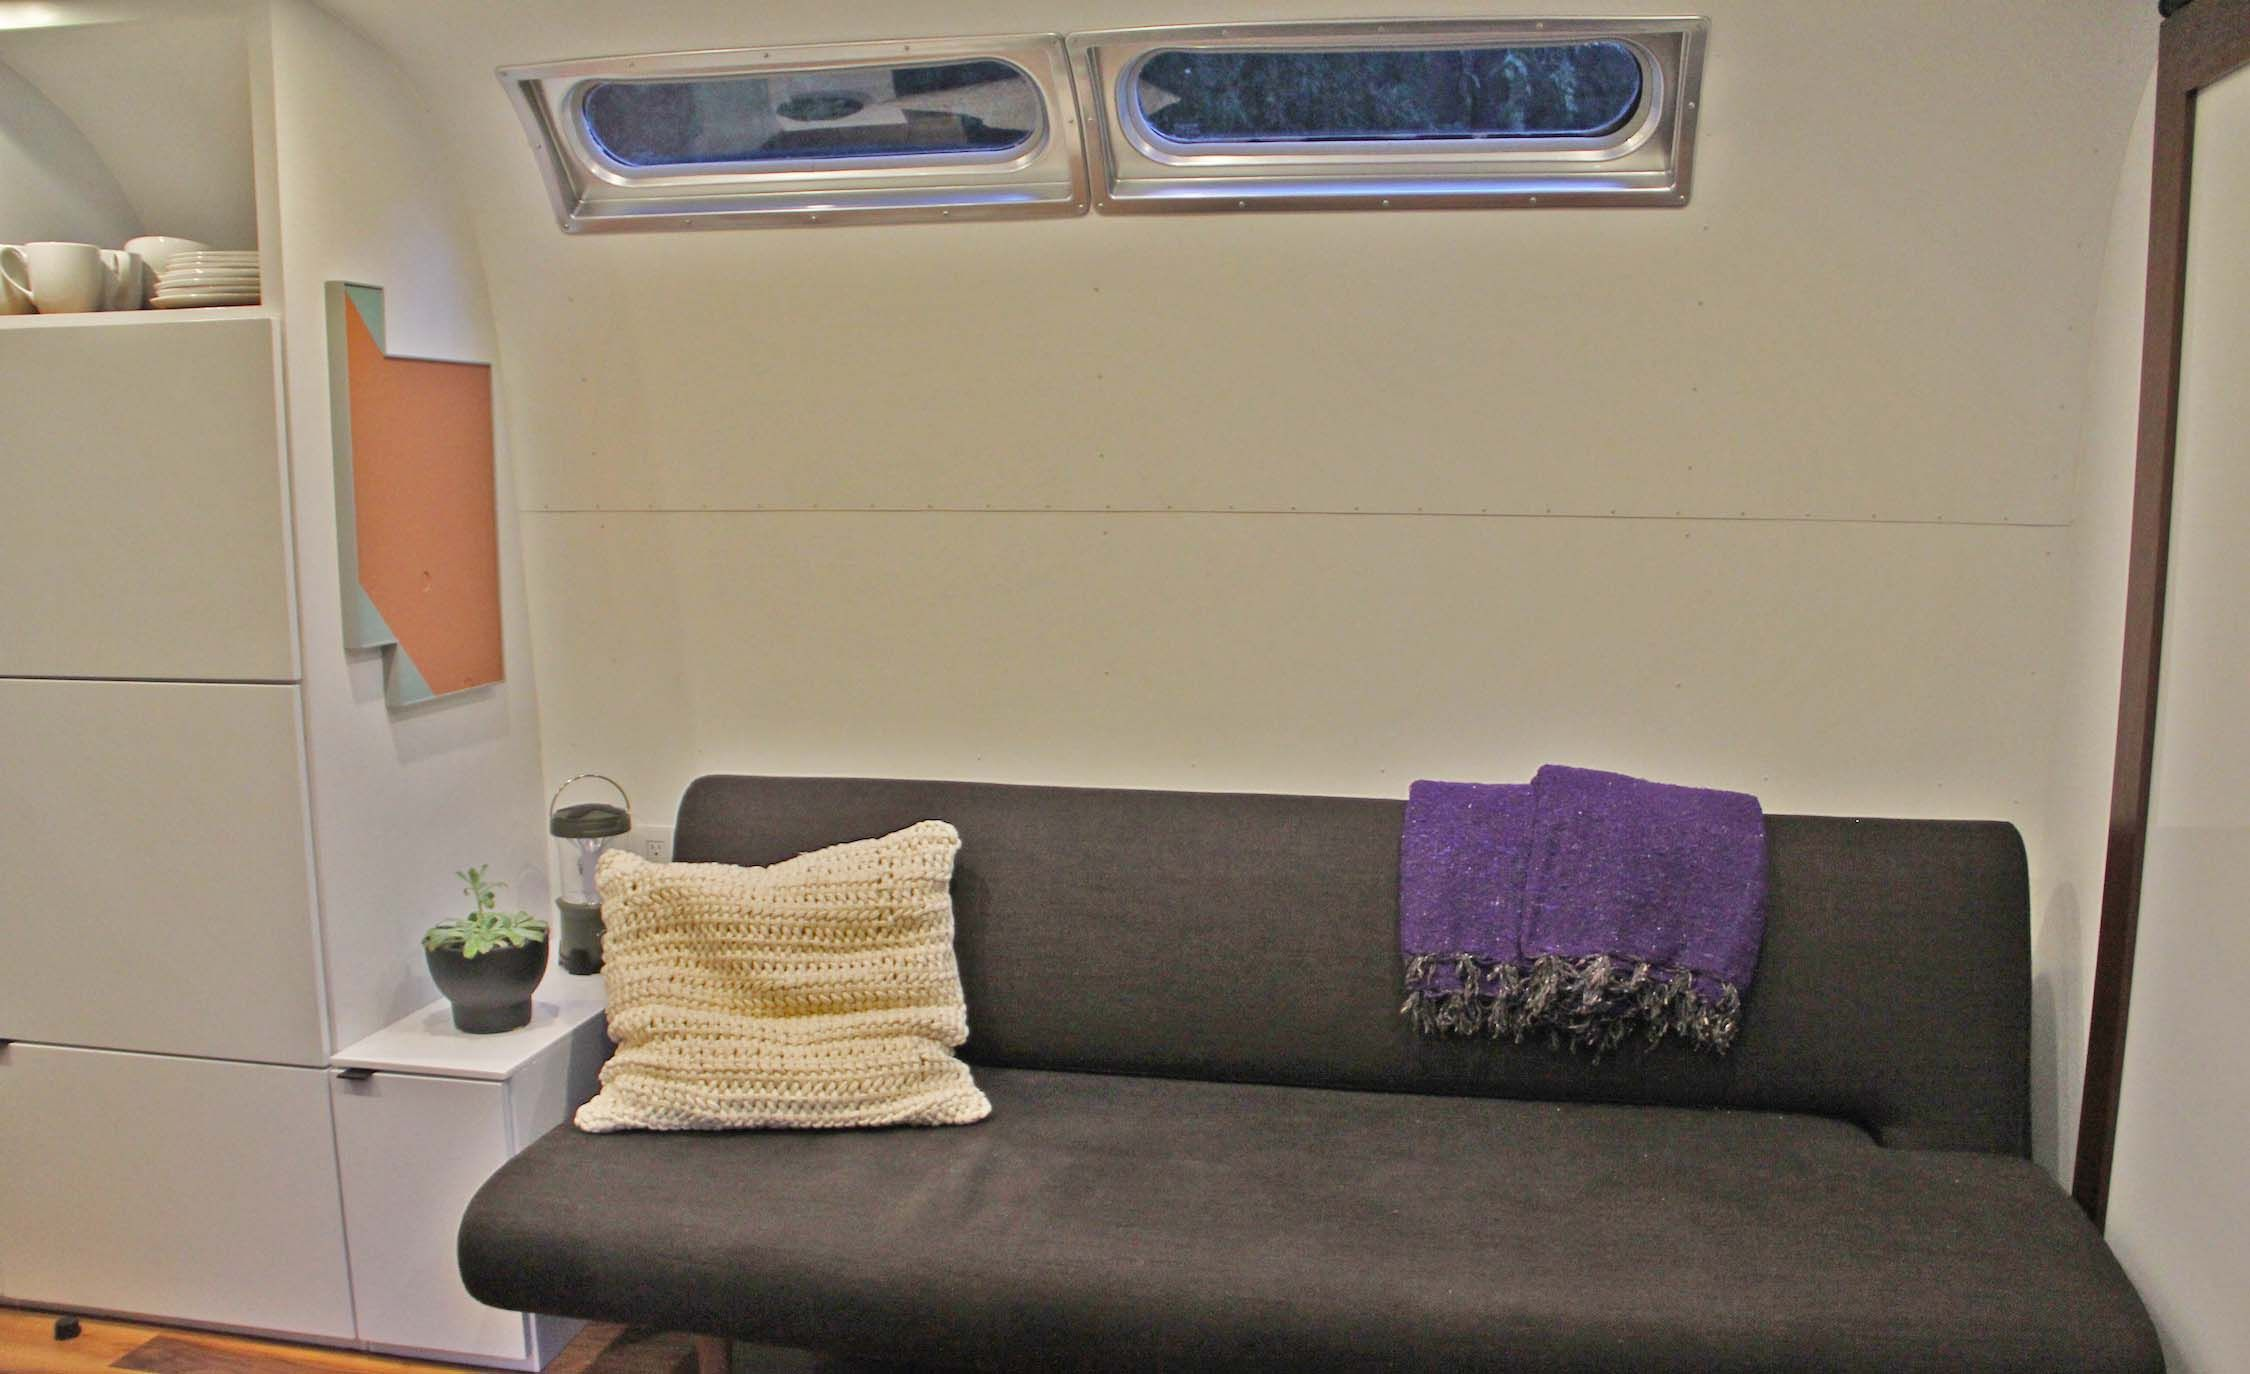 Peachy Tent Spent We Try Luxury Camping In A 100 000 Airstream Andrewgaddart Wooden Chair Designs For Living Room Andrewgaddartcom